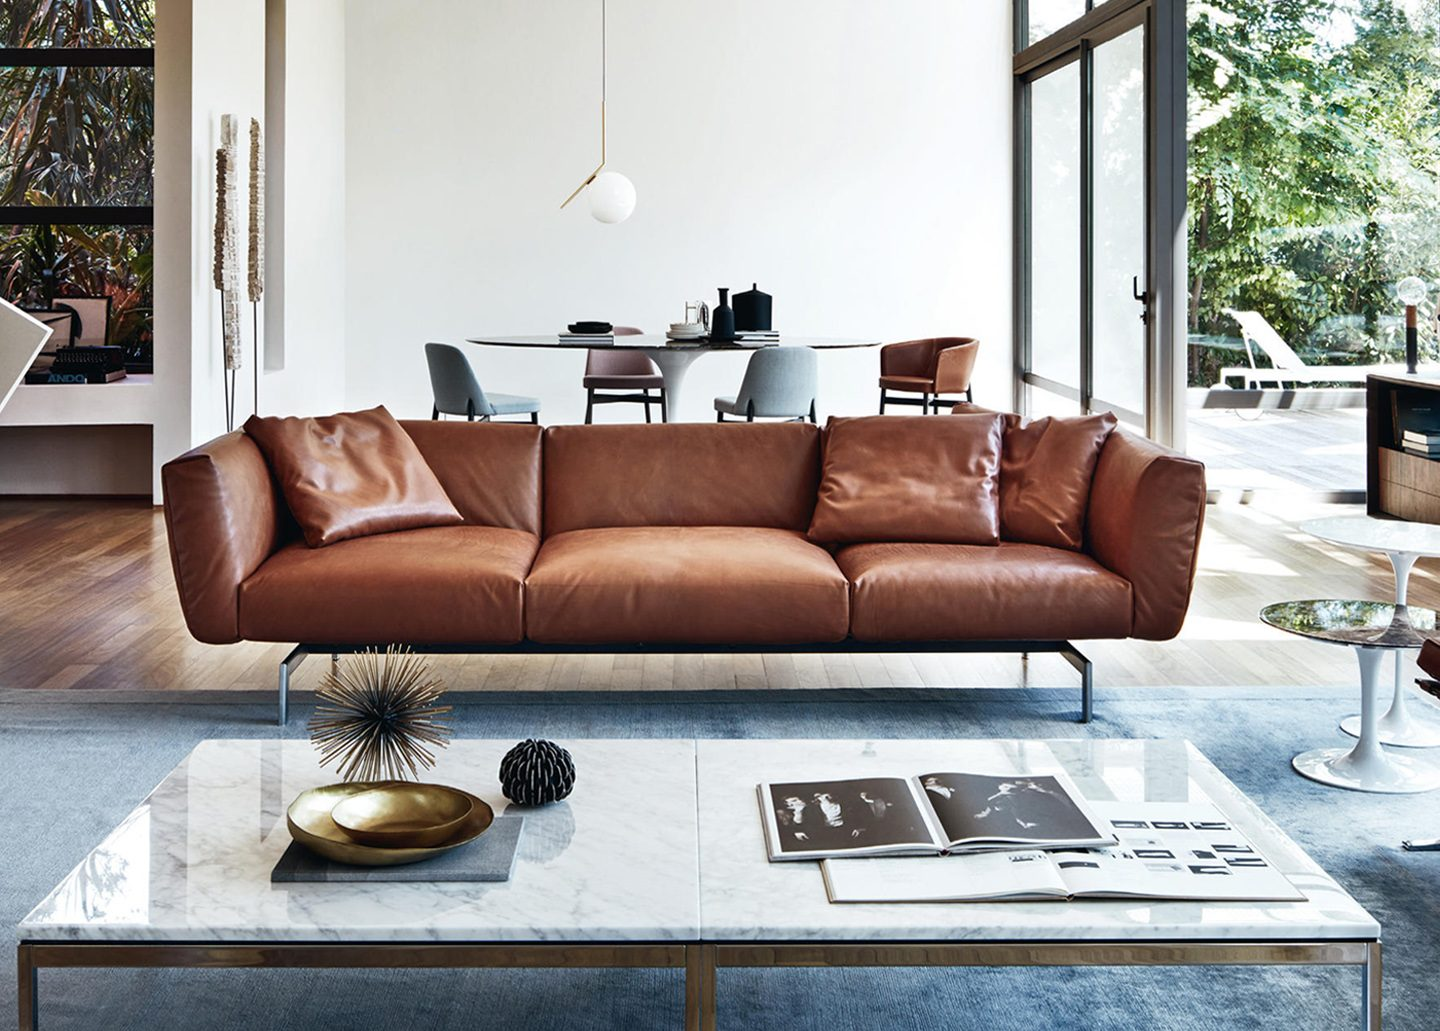 AVIO THREE SEATER LEATHER SOFA BY KNOLL